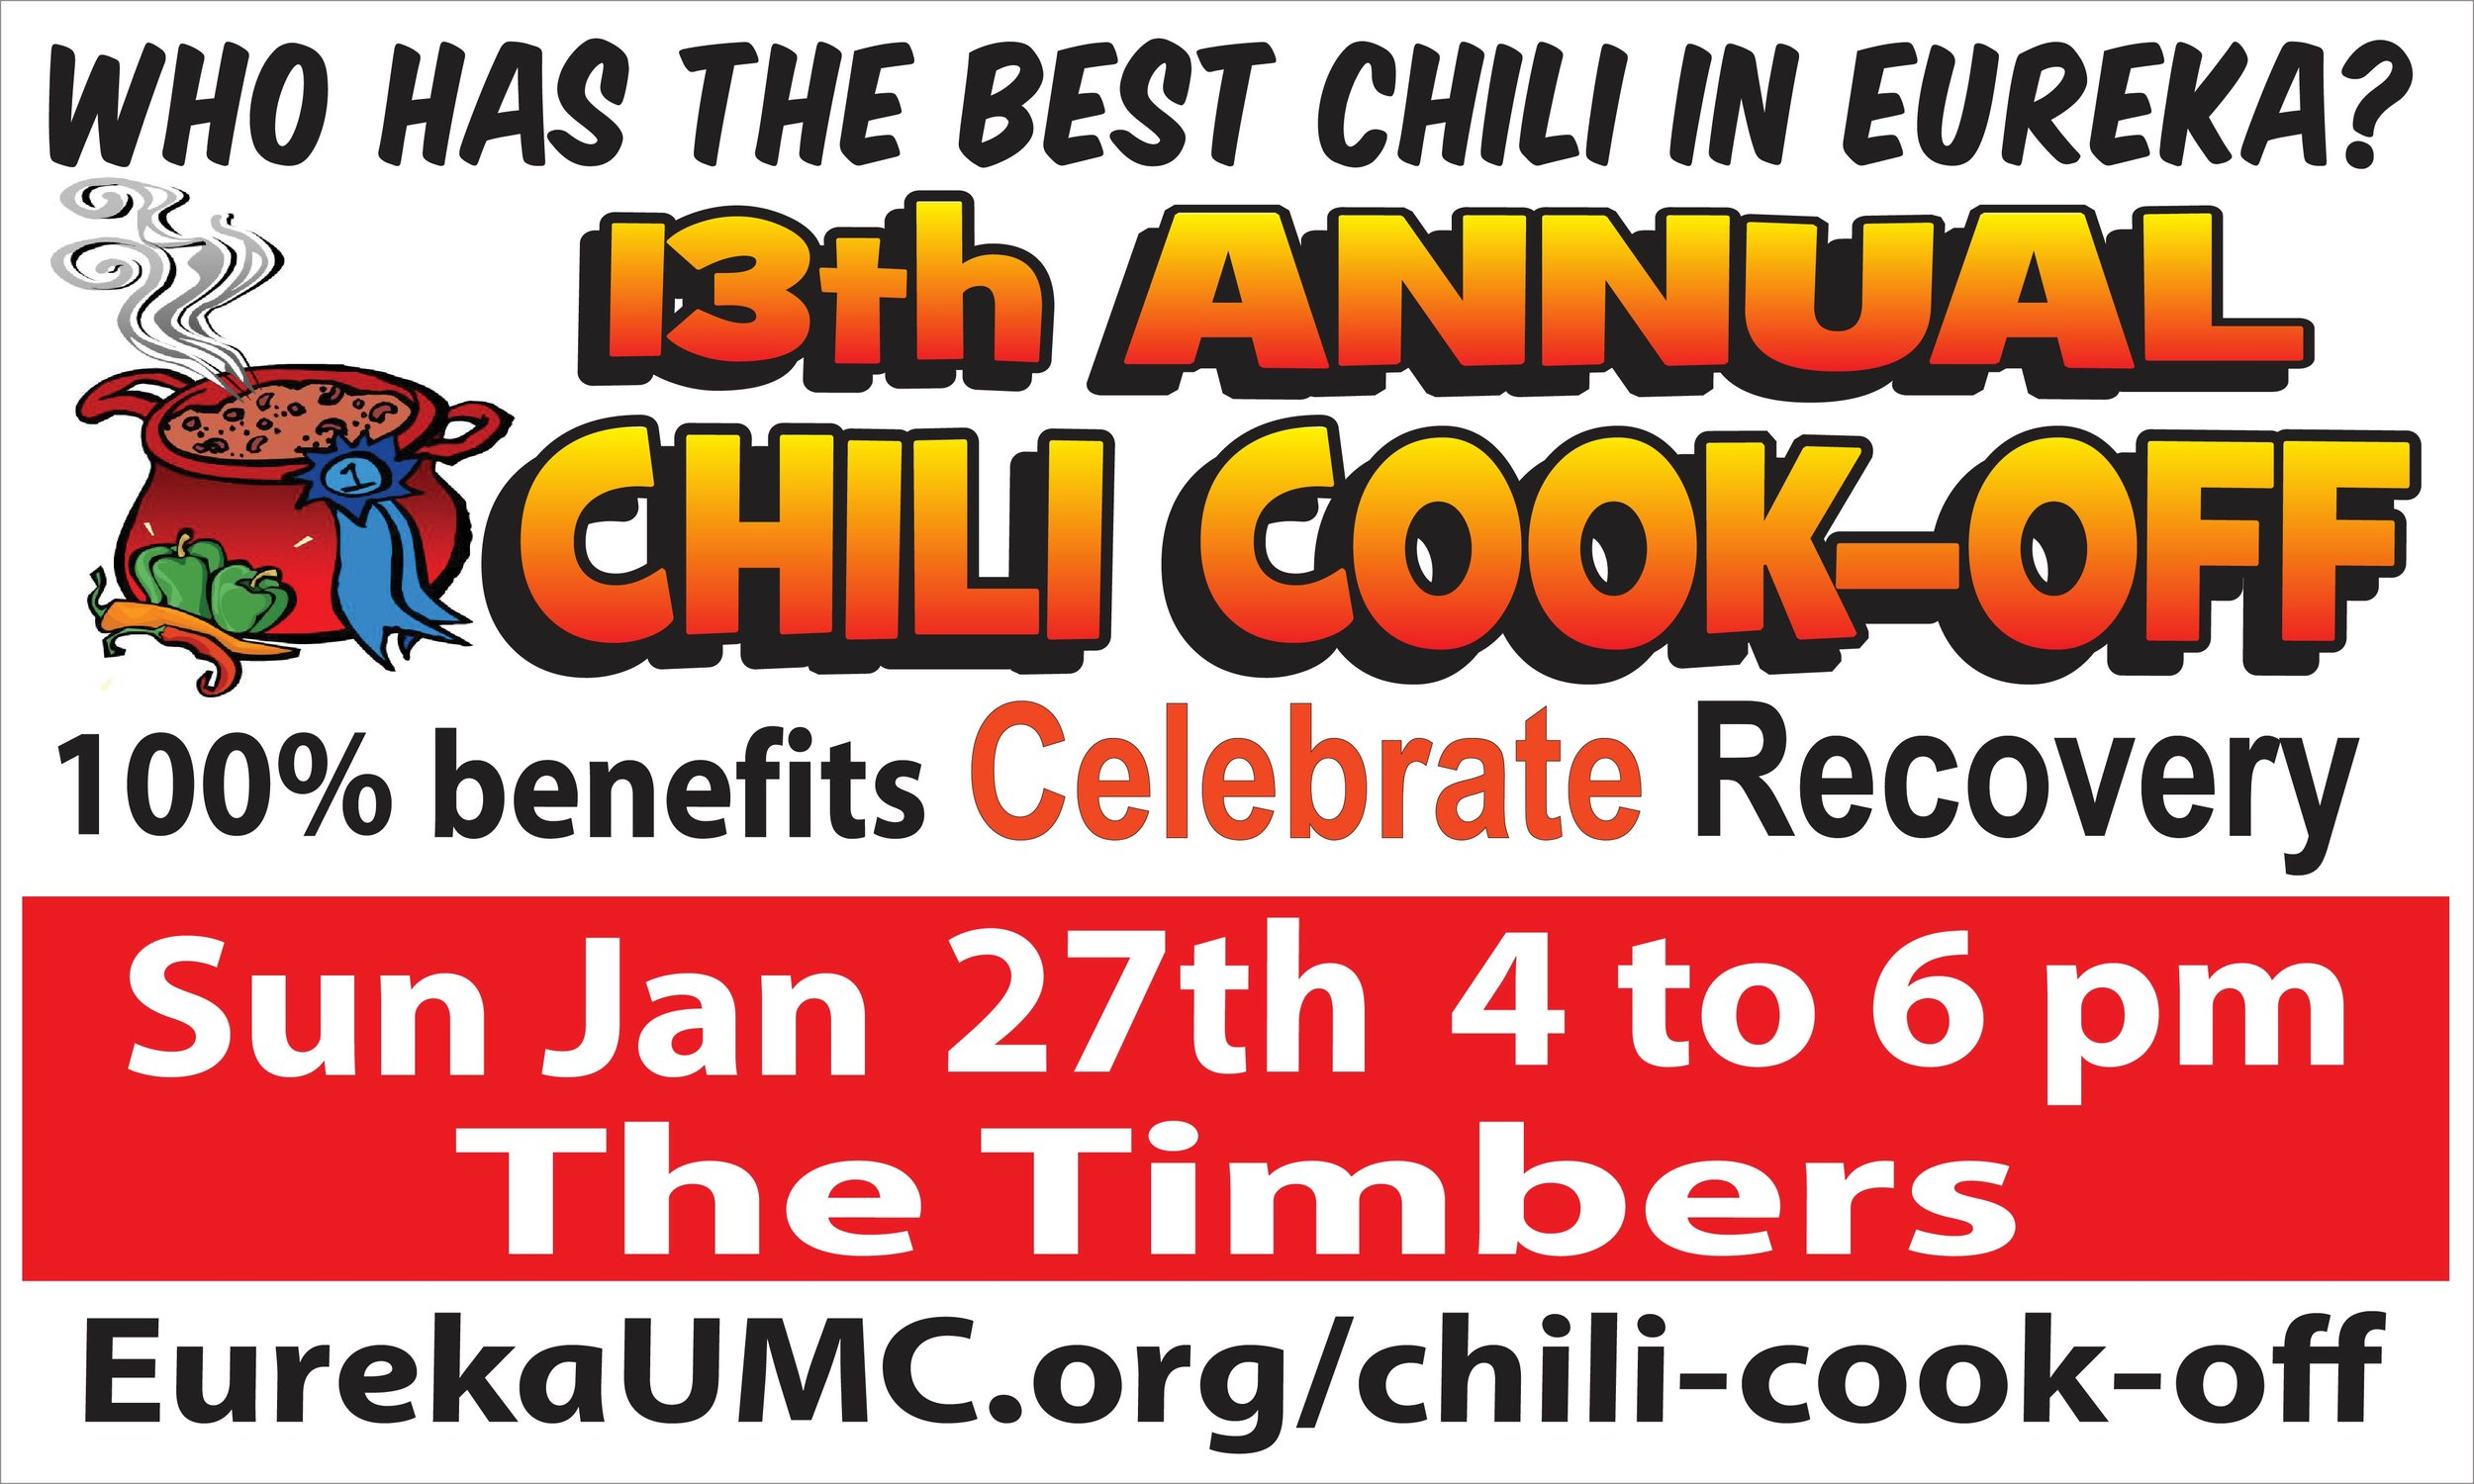 chili cook off 19 banner.jpg